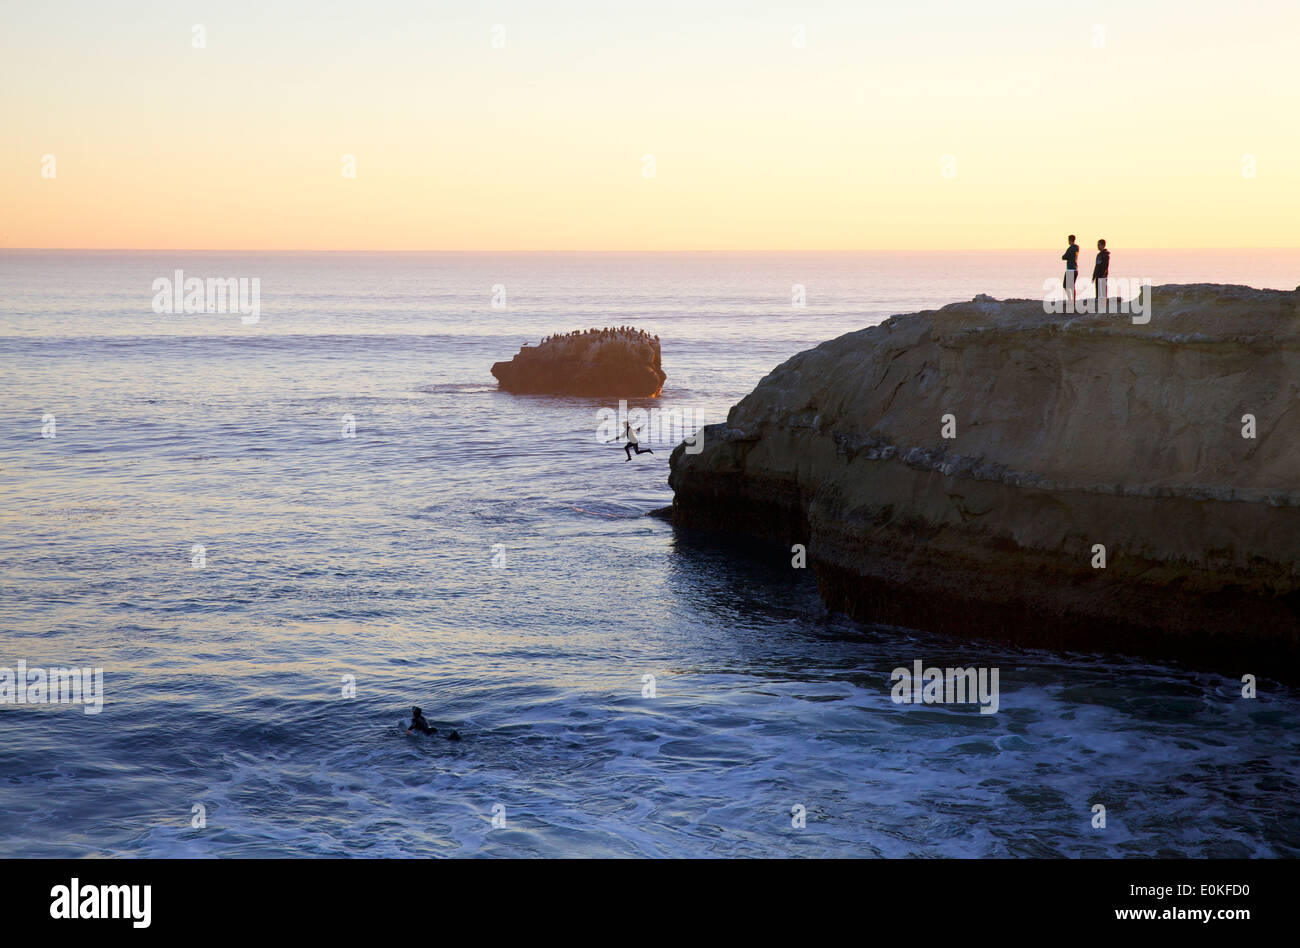 Onlookers watch on a cliff as a surfer jumps into the ocean at Steamers in Santa Cruz California at sunset. - Stock Image